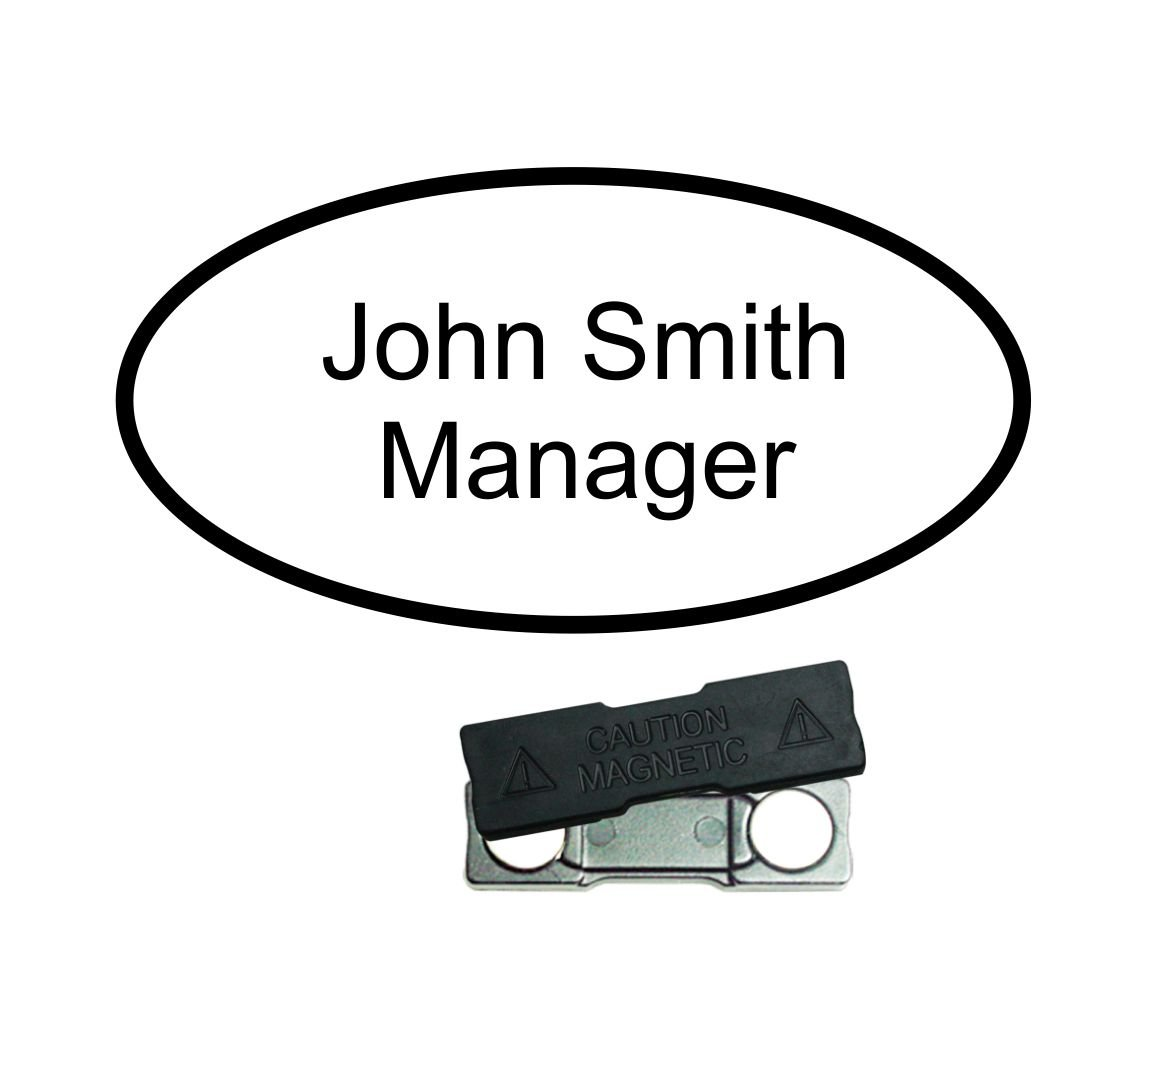 trophy deluxe personalised oval white name badge with black text